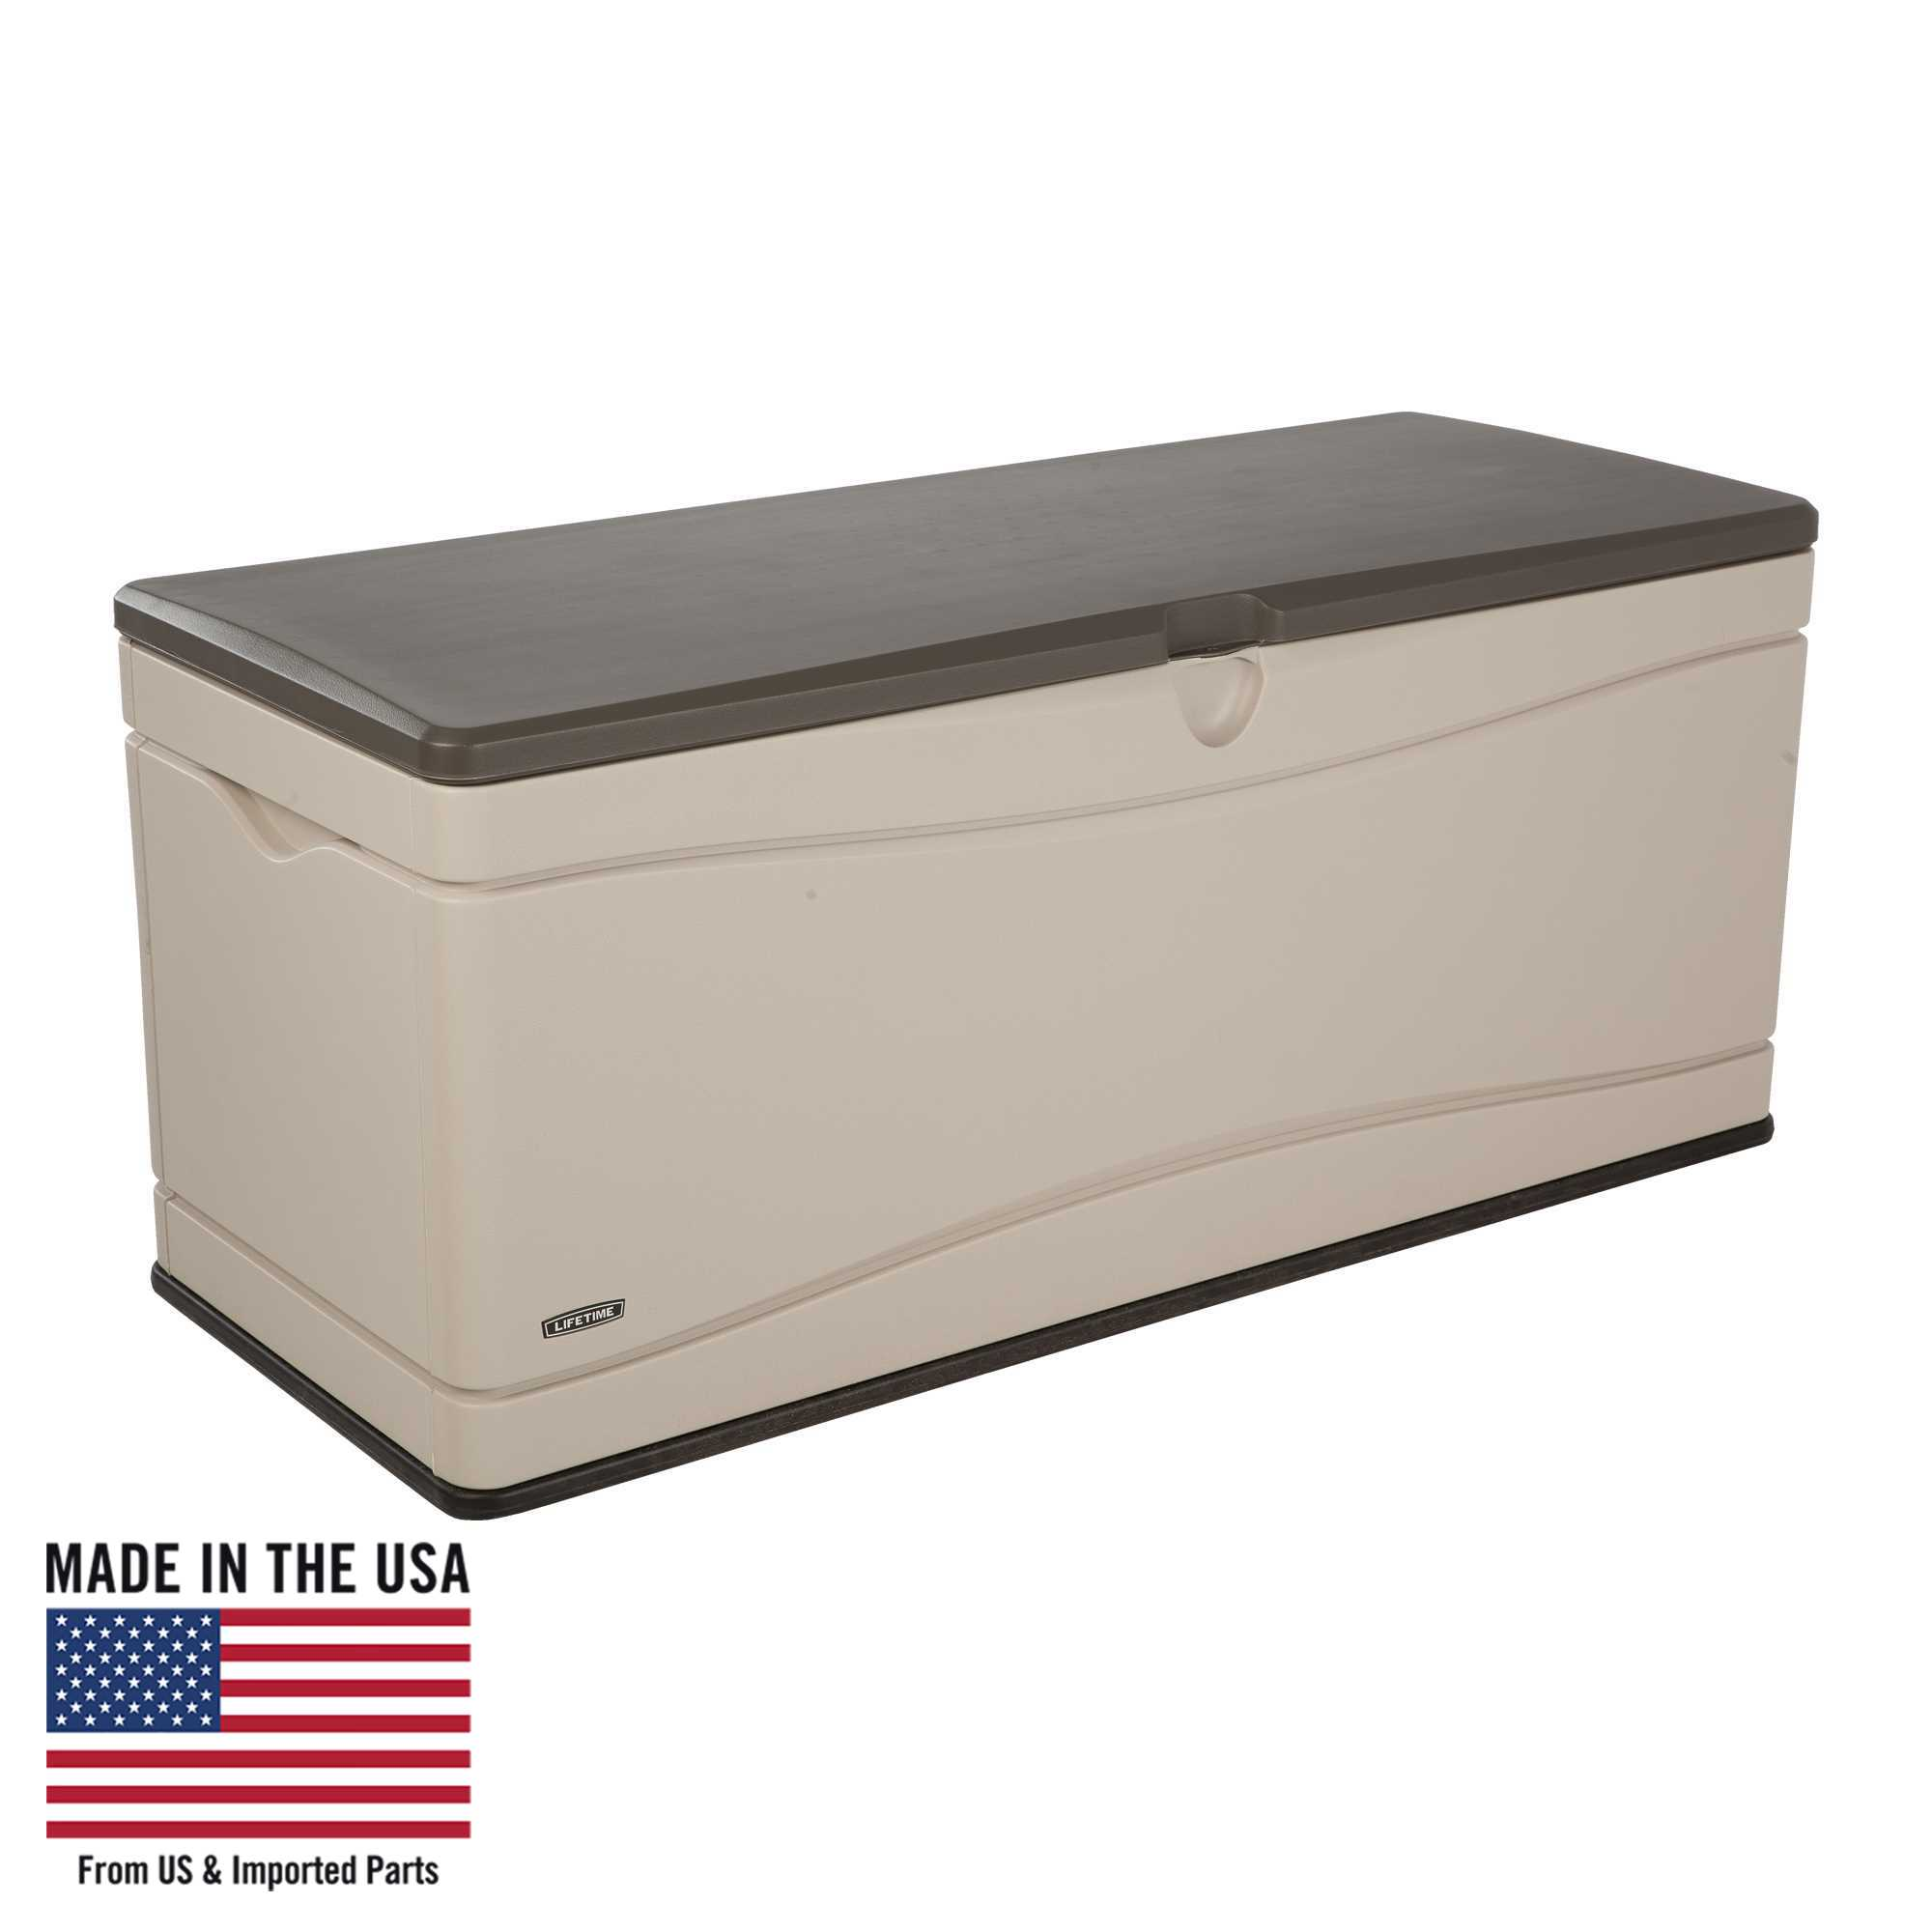 Outdoor Storage Box (130 gallon)